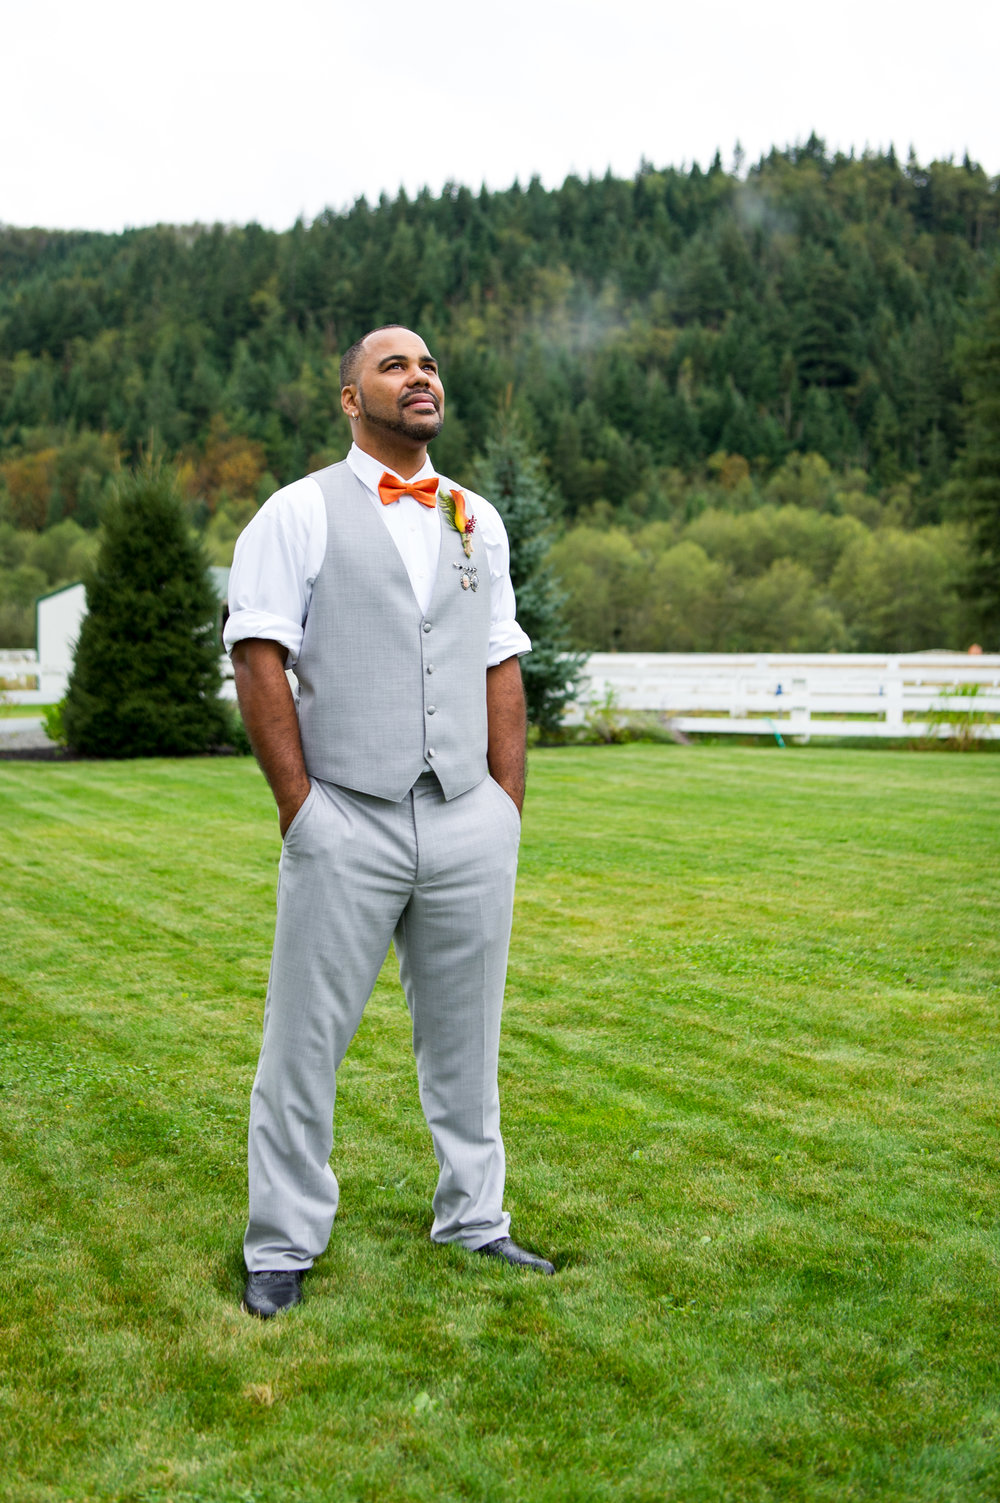 Marcus Pacific Northwest Overcast Nature Farm Outdoors Groom Bridal Portrait at Rein Fire Ranch in Ravensdale Washington